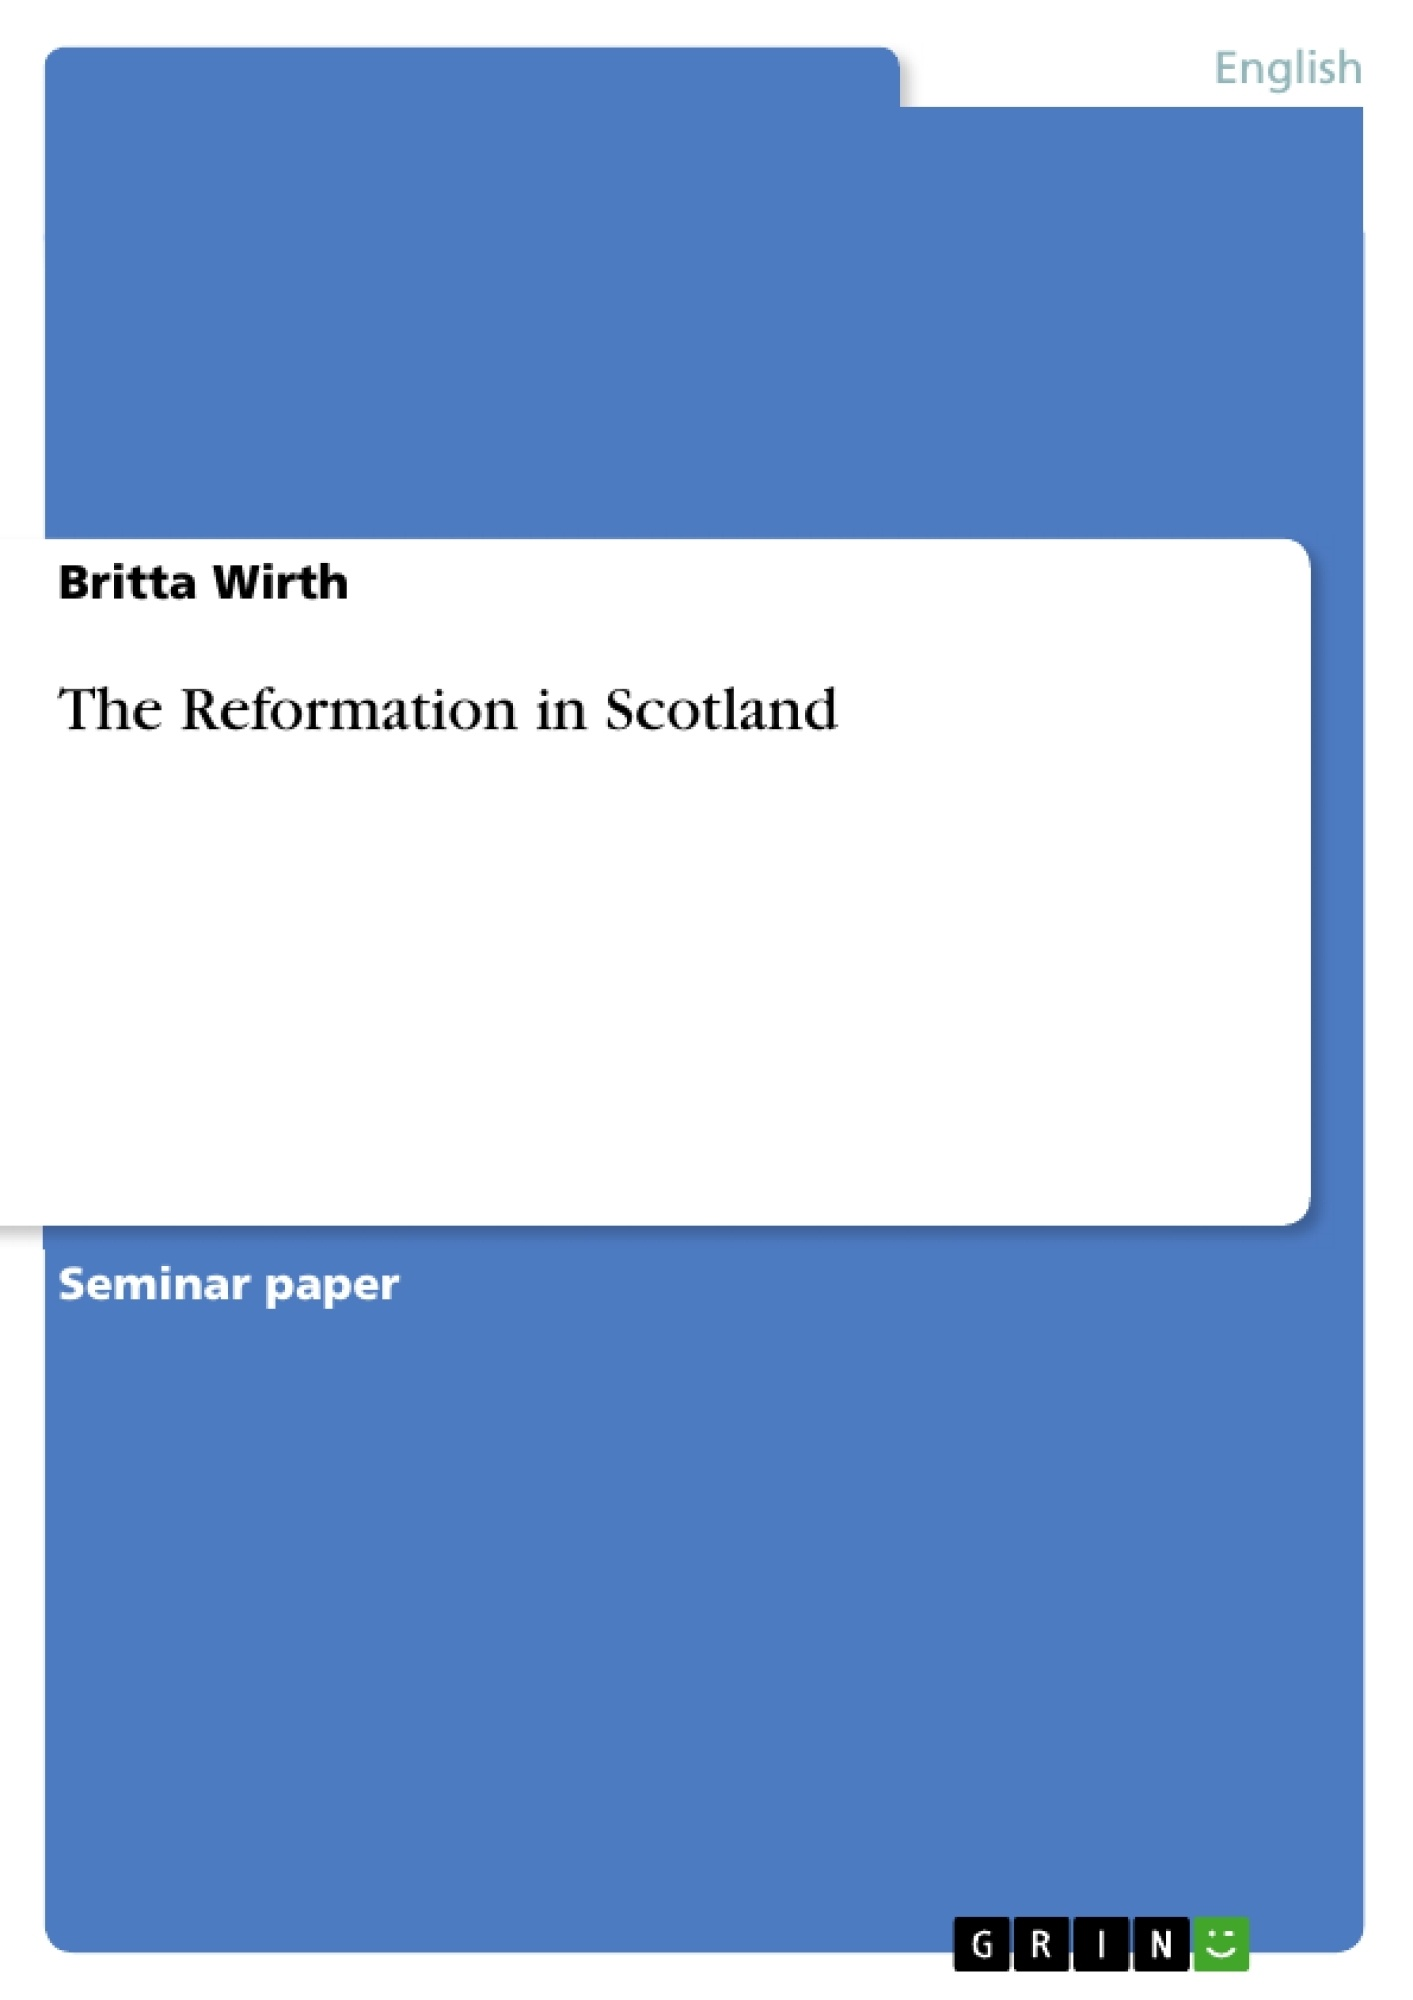 Title: The Reformation in Scotland